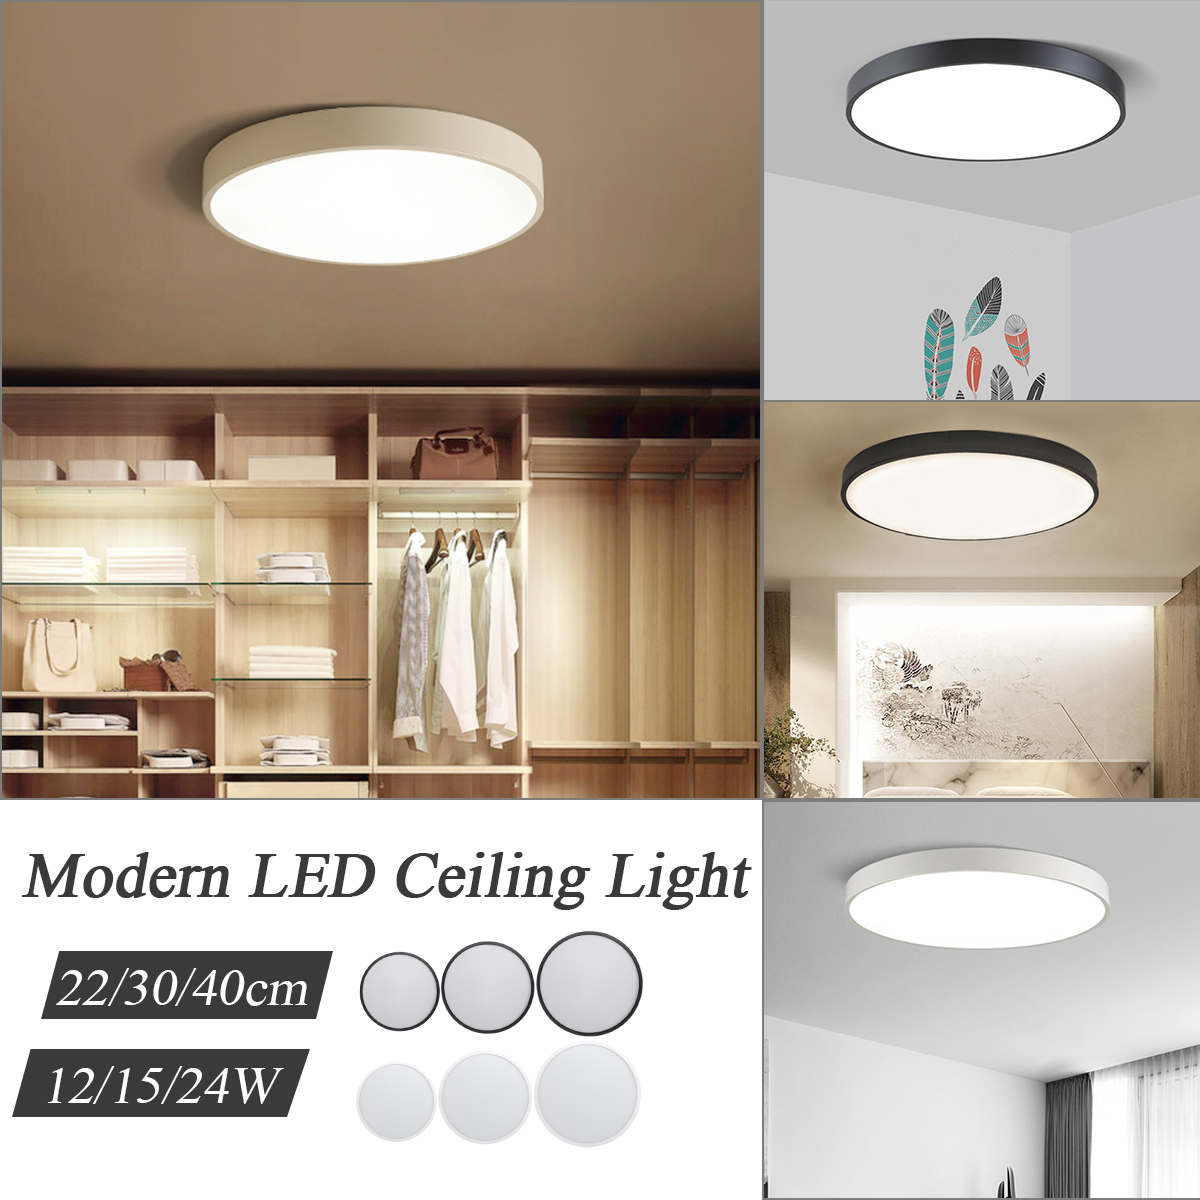 12/15/24W Modern Ultra Thin LED Ceiling Lights Panel Down Lighting Ceiling Lamp Surface Mount for Living Room Kitchen Bedroom